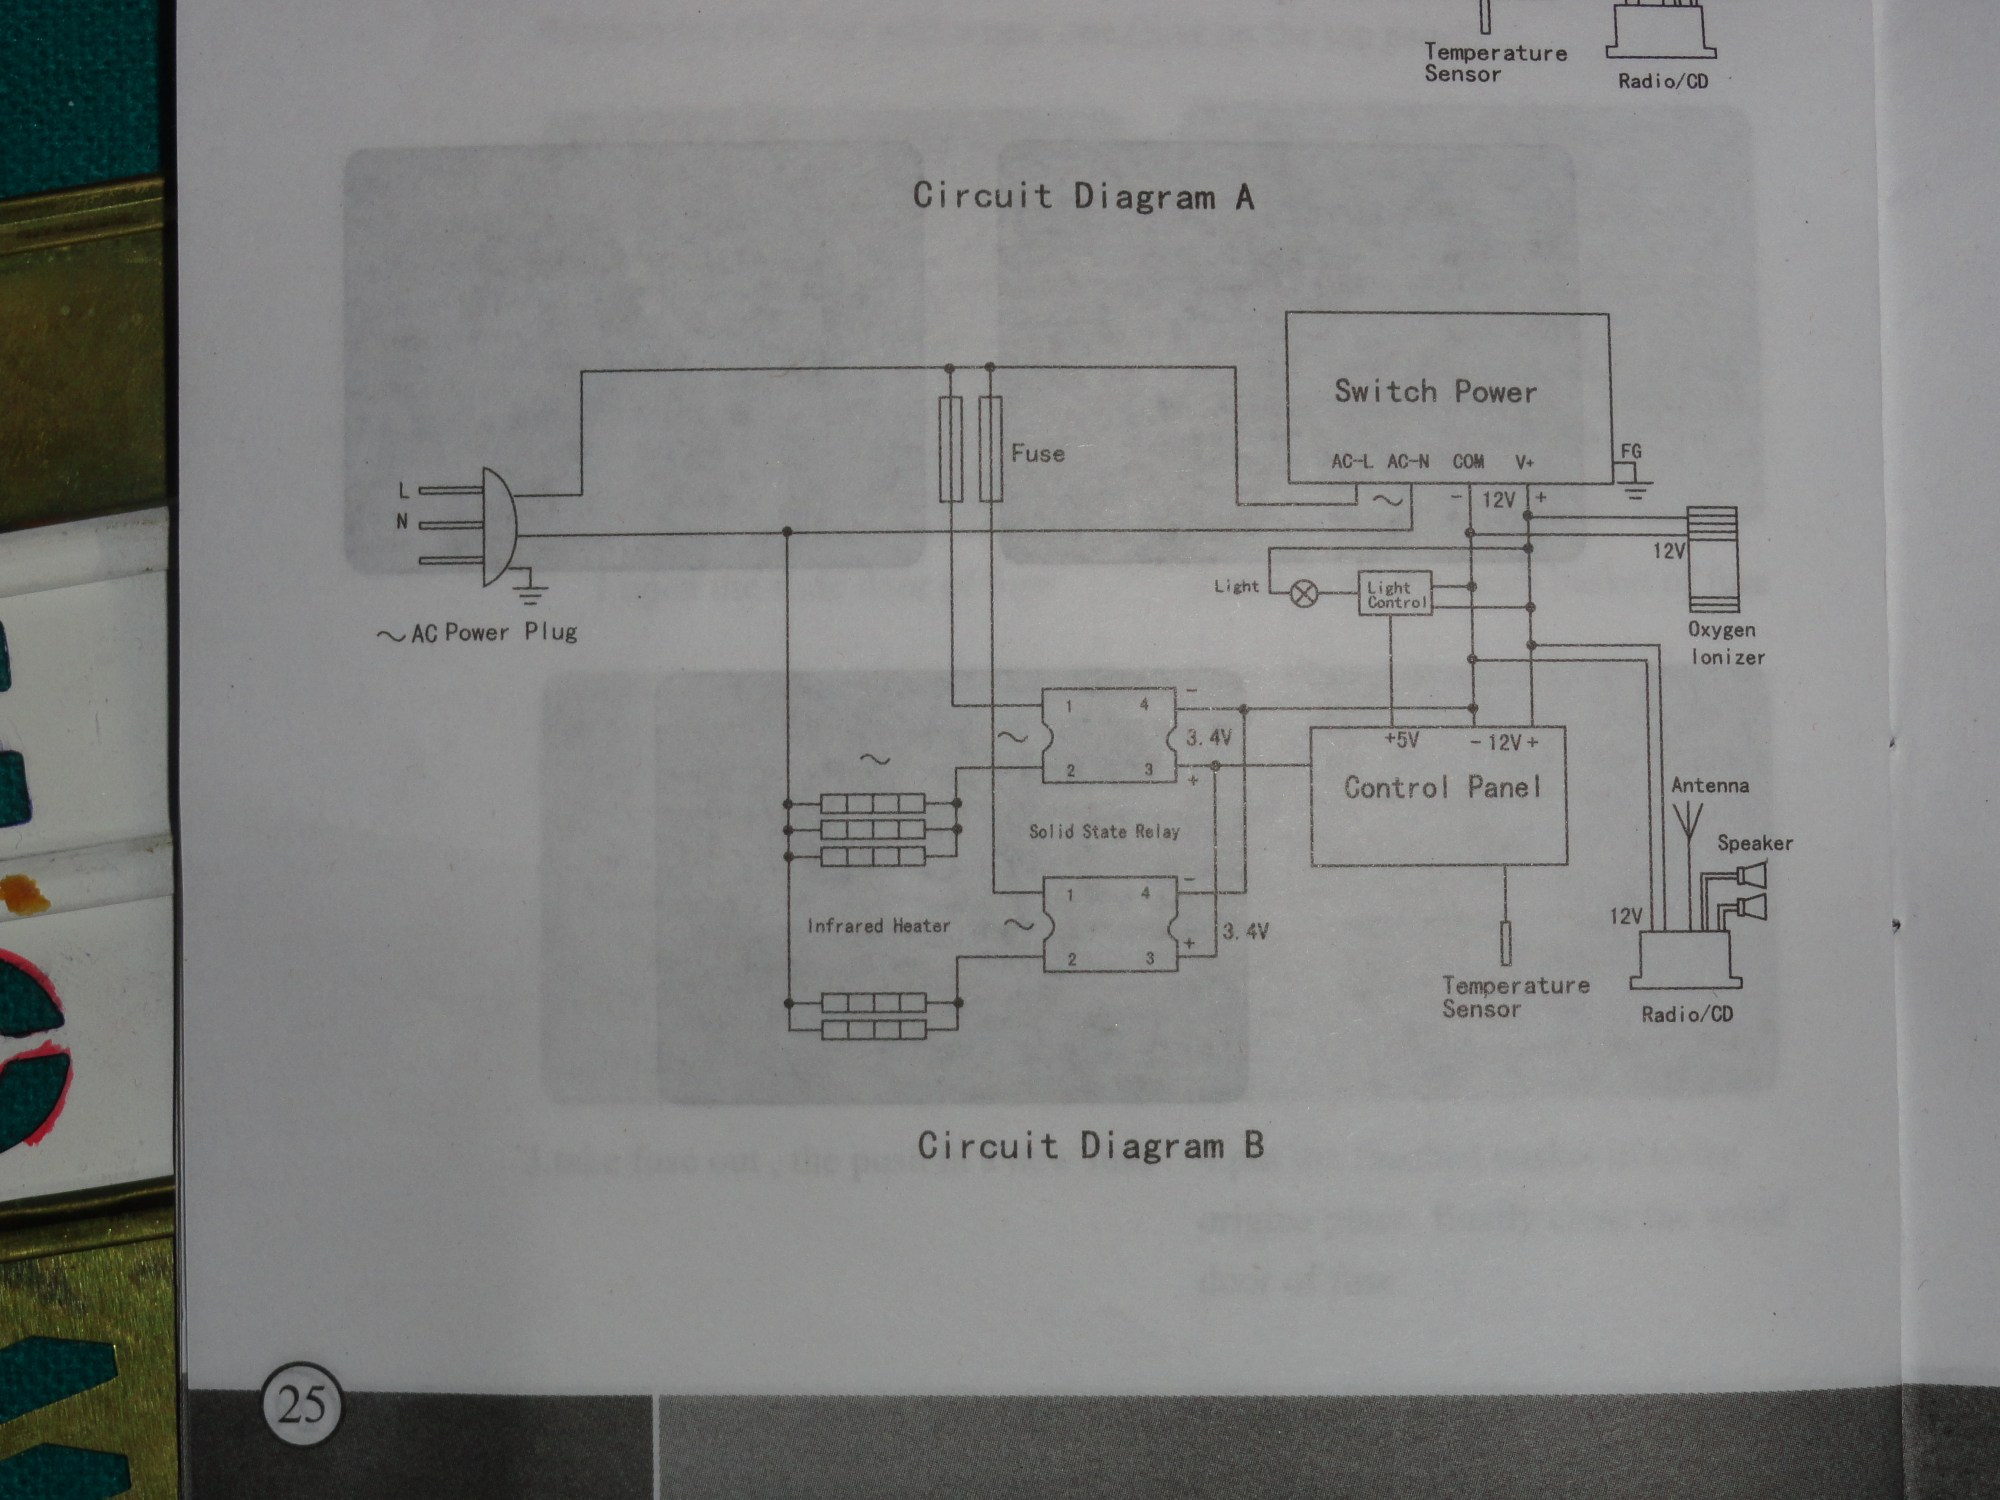 hight resolution of 2nd of 2 electrical diagrams